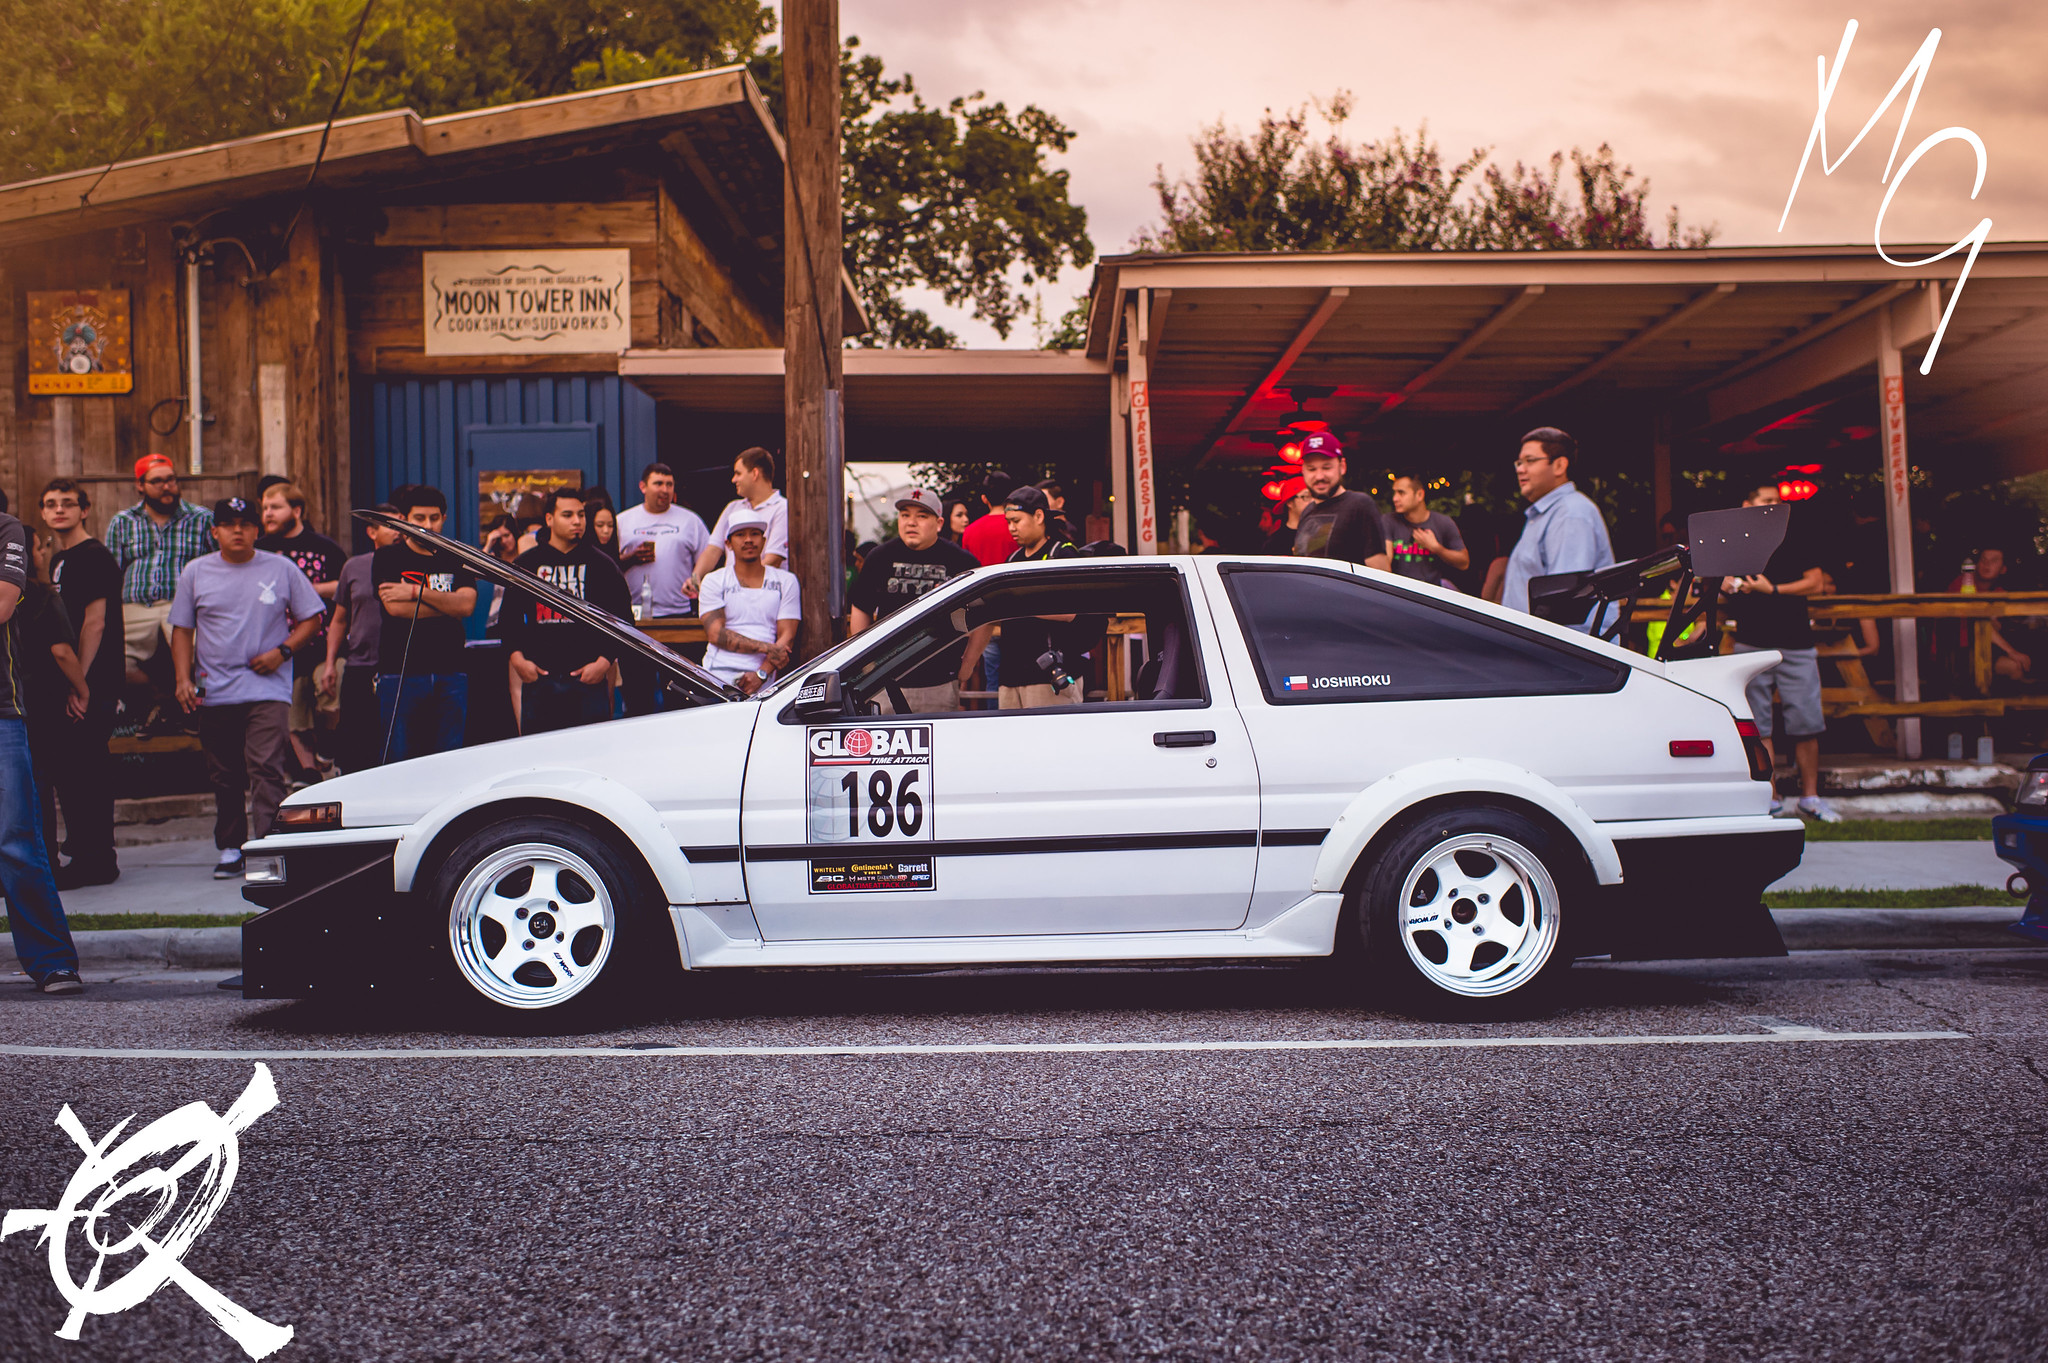 Josh Garcia's Time Attack V8 powered Trueno Hatch- with gigantic wing